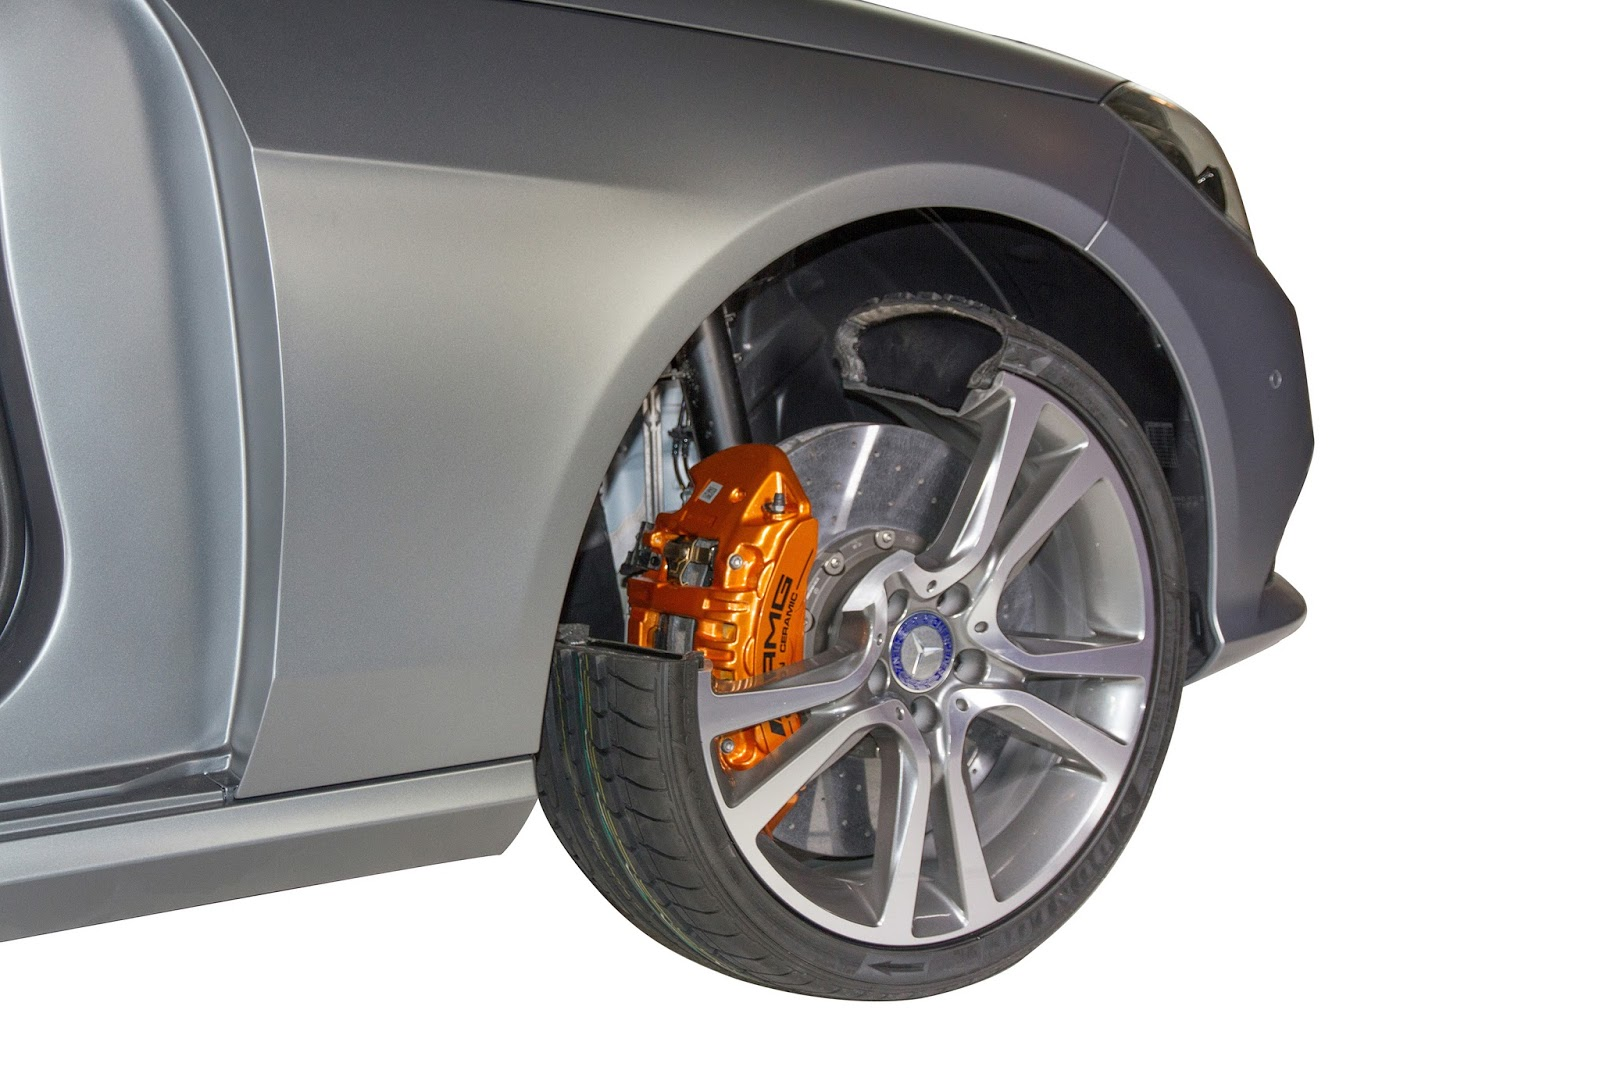 How The Car Brake Works - Universal Science Compendium